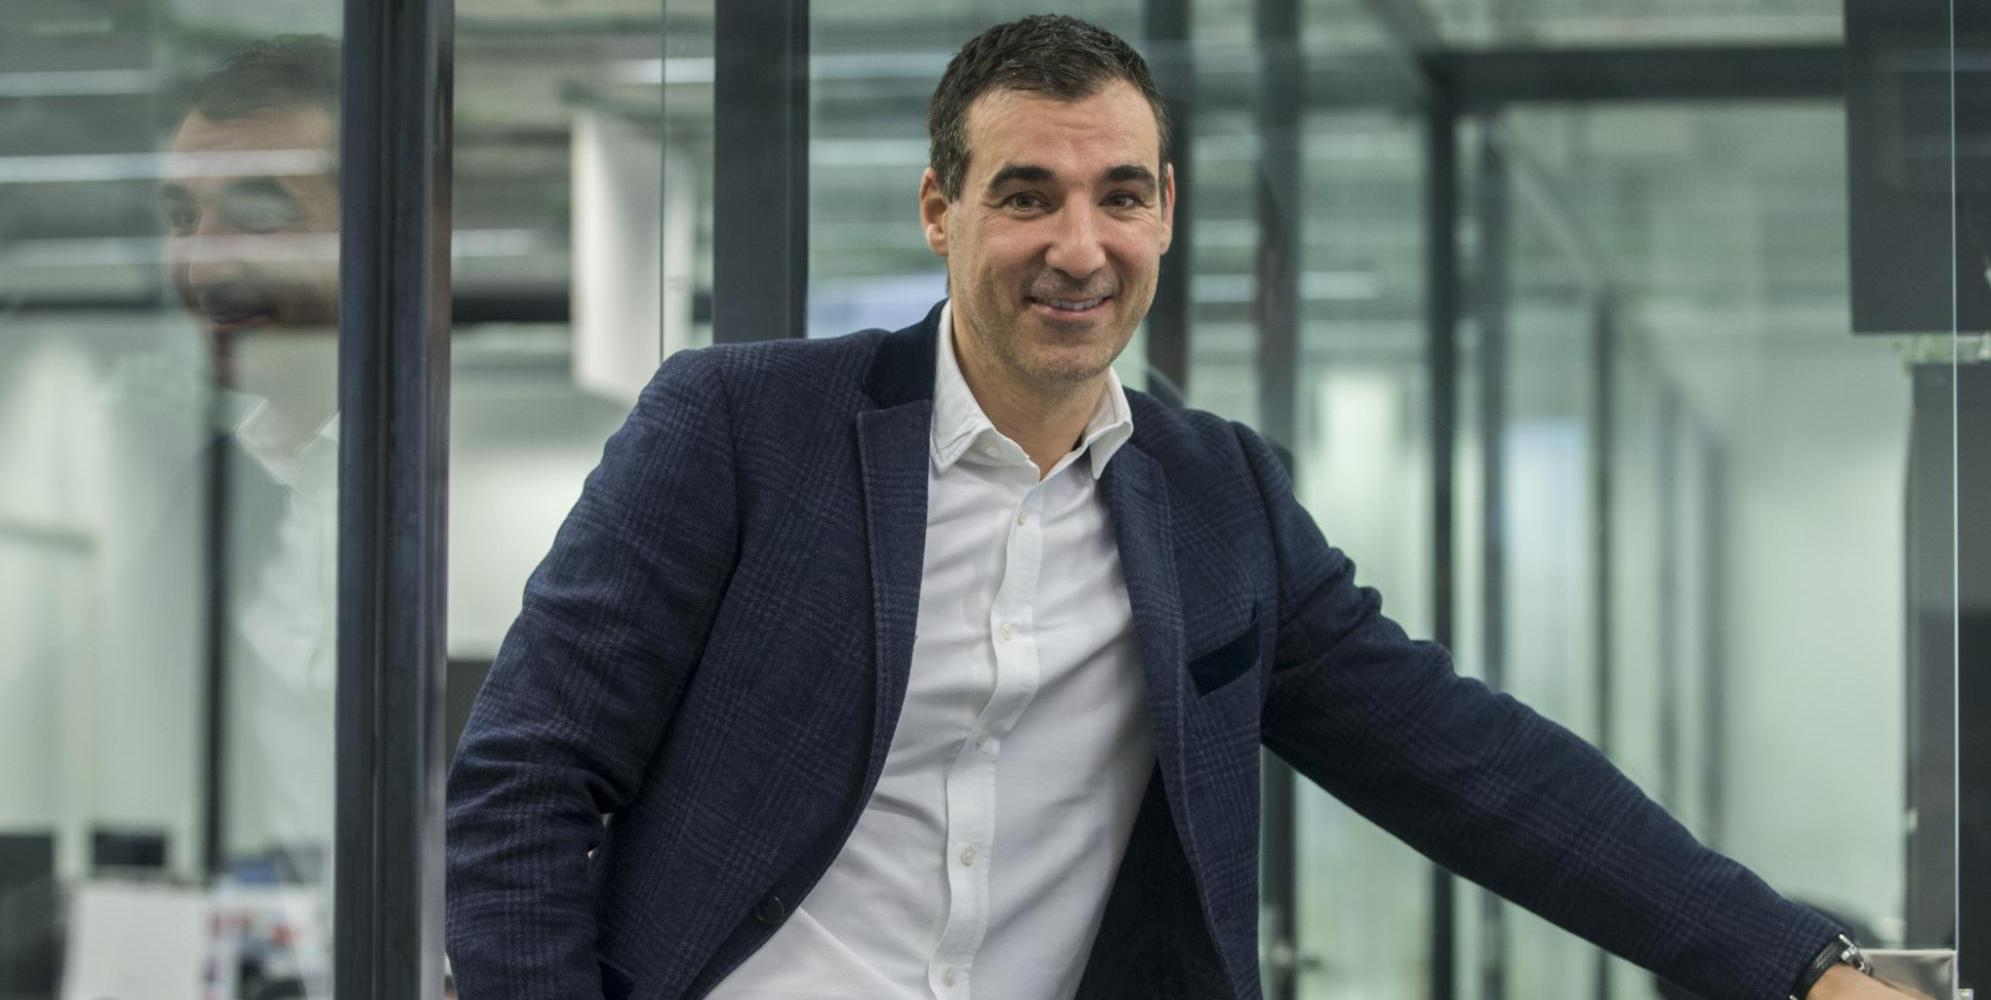 Miguel Vicente, head of Barcelona tech city